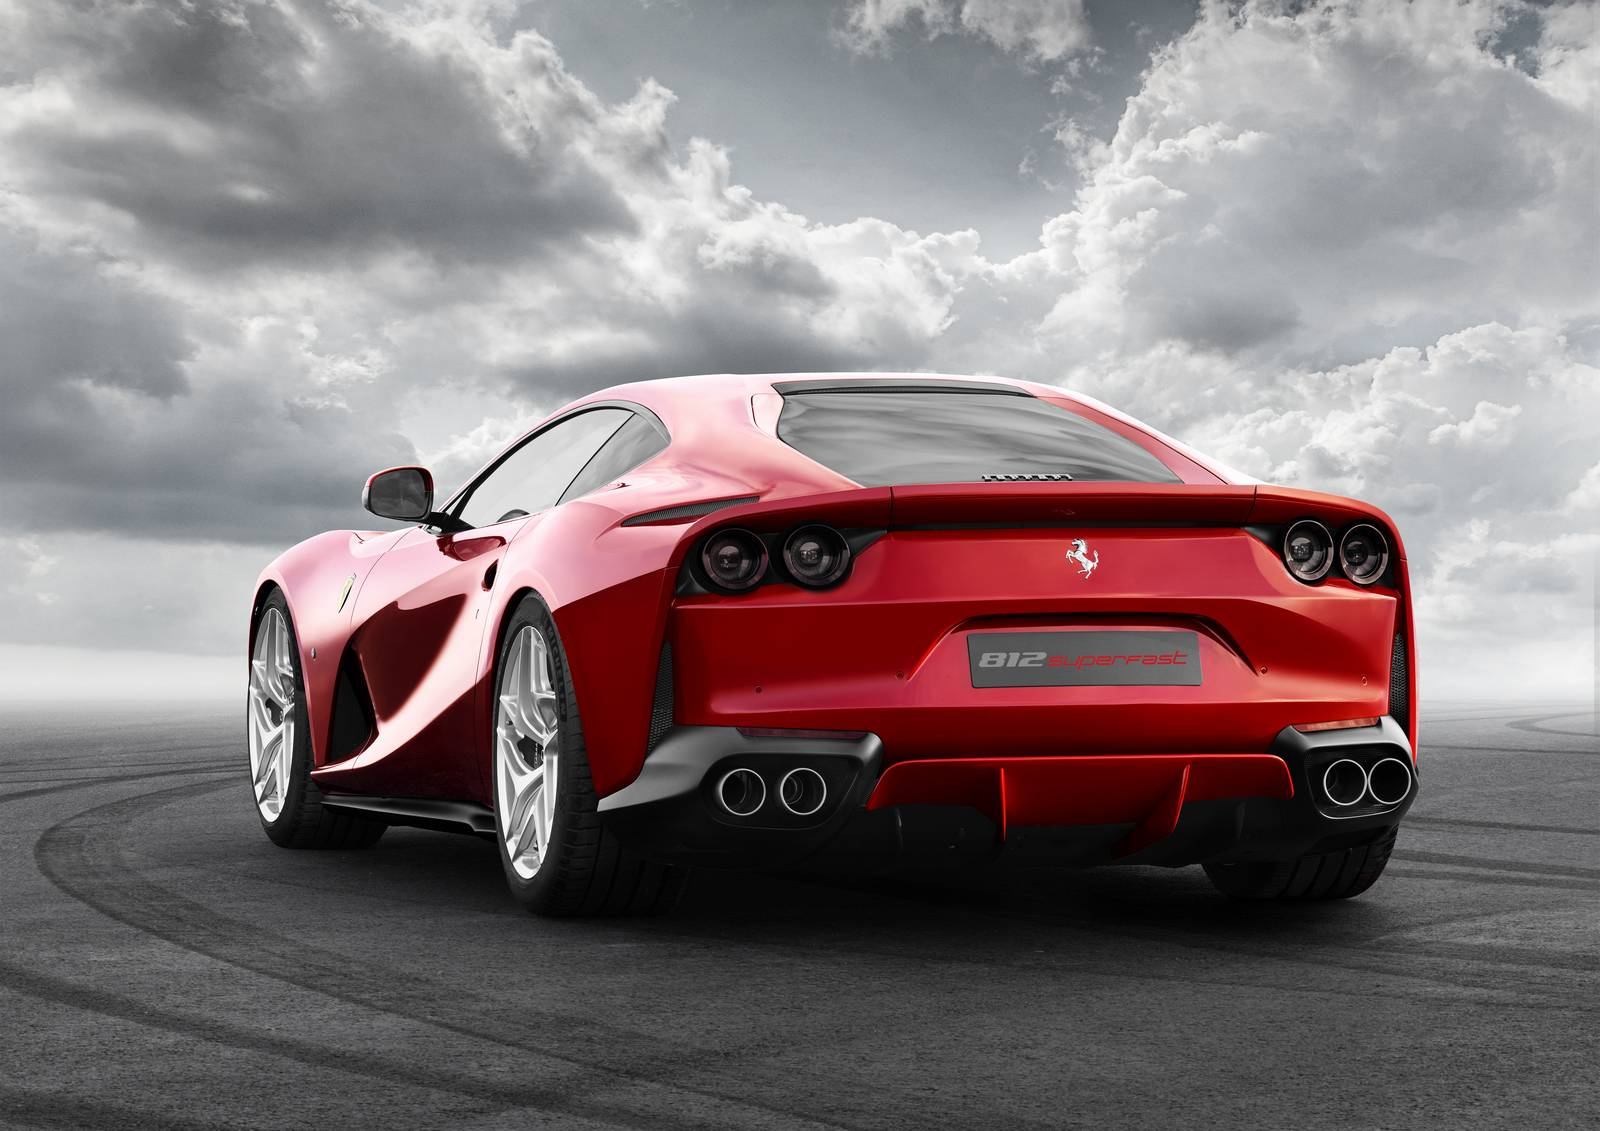 2017 Ferrari 458 Price >> Official: 2018 Ferrari 812 Superfast - GTspirit